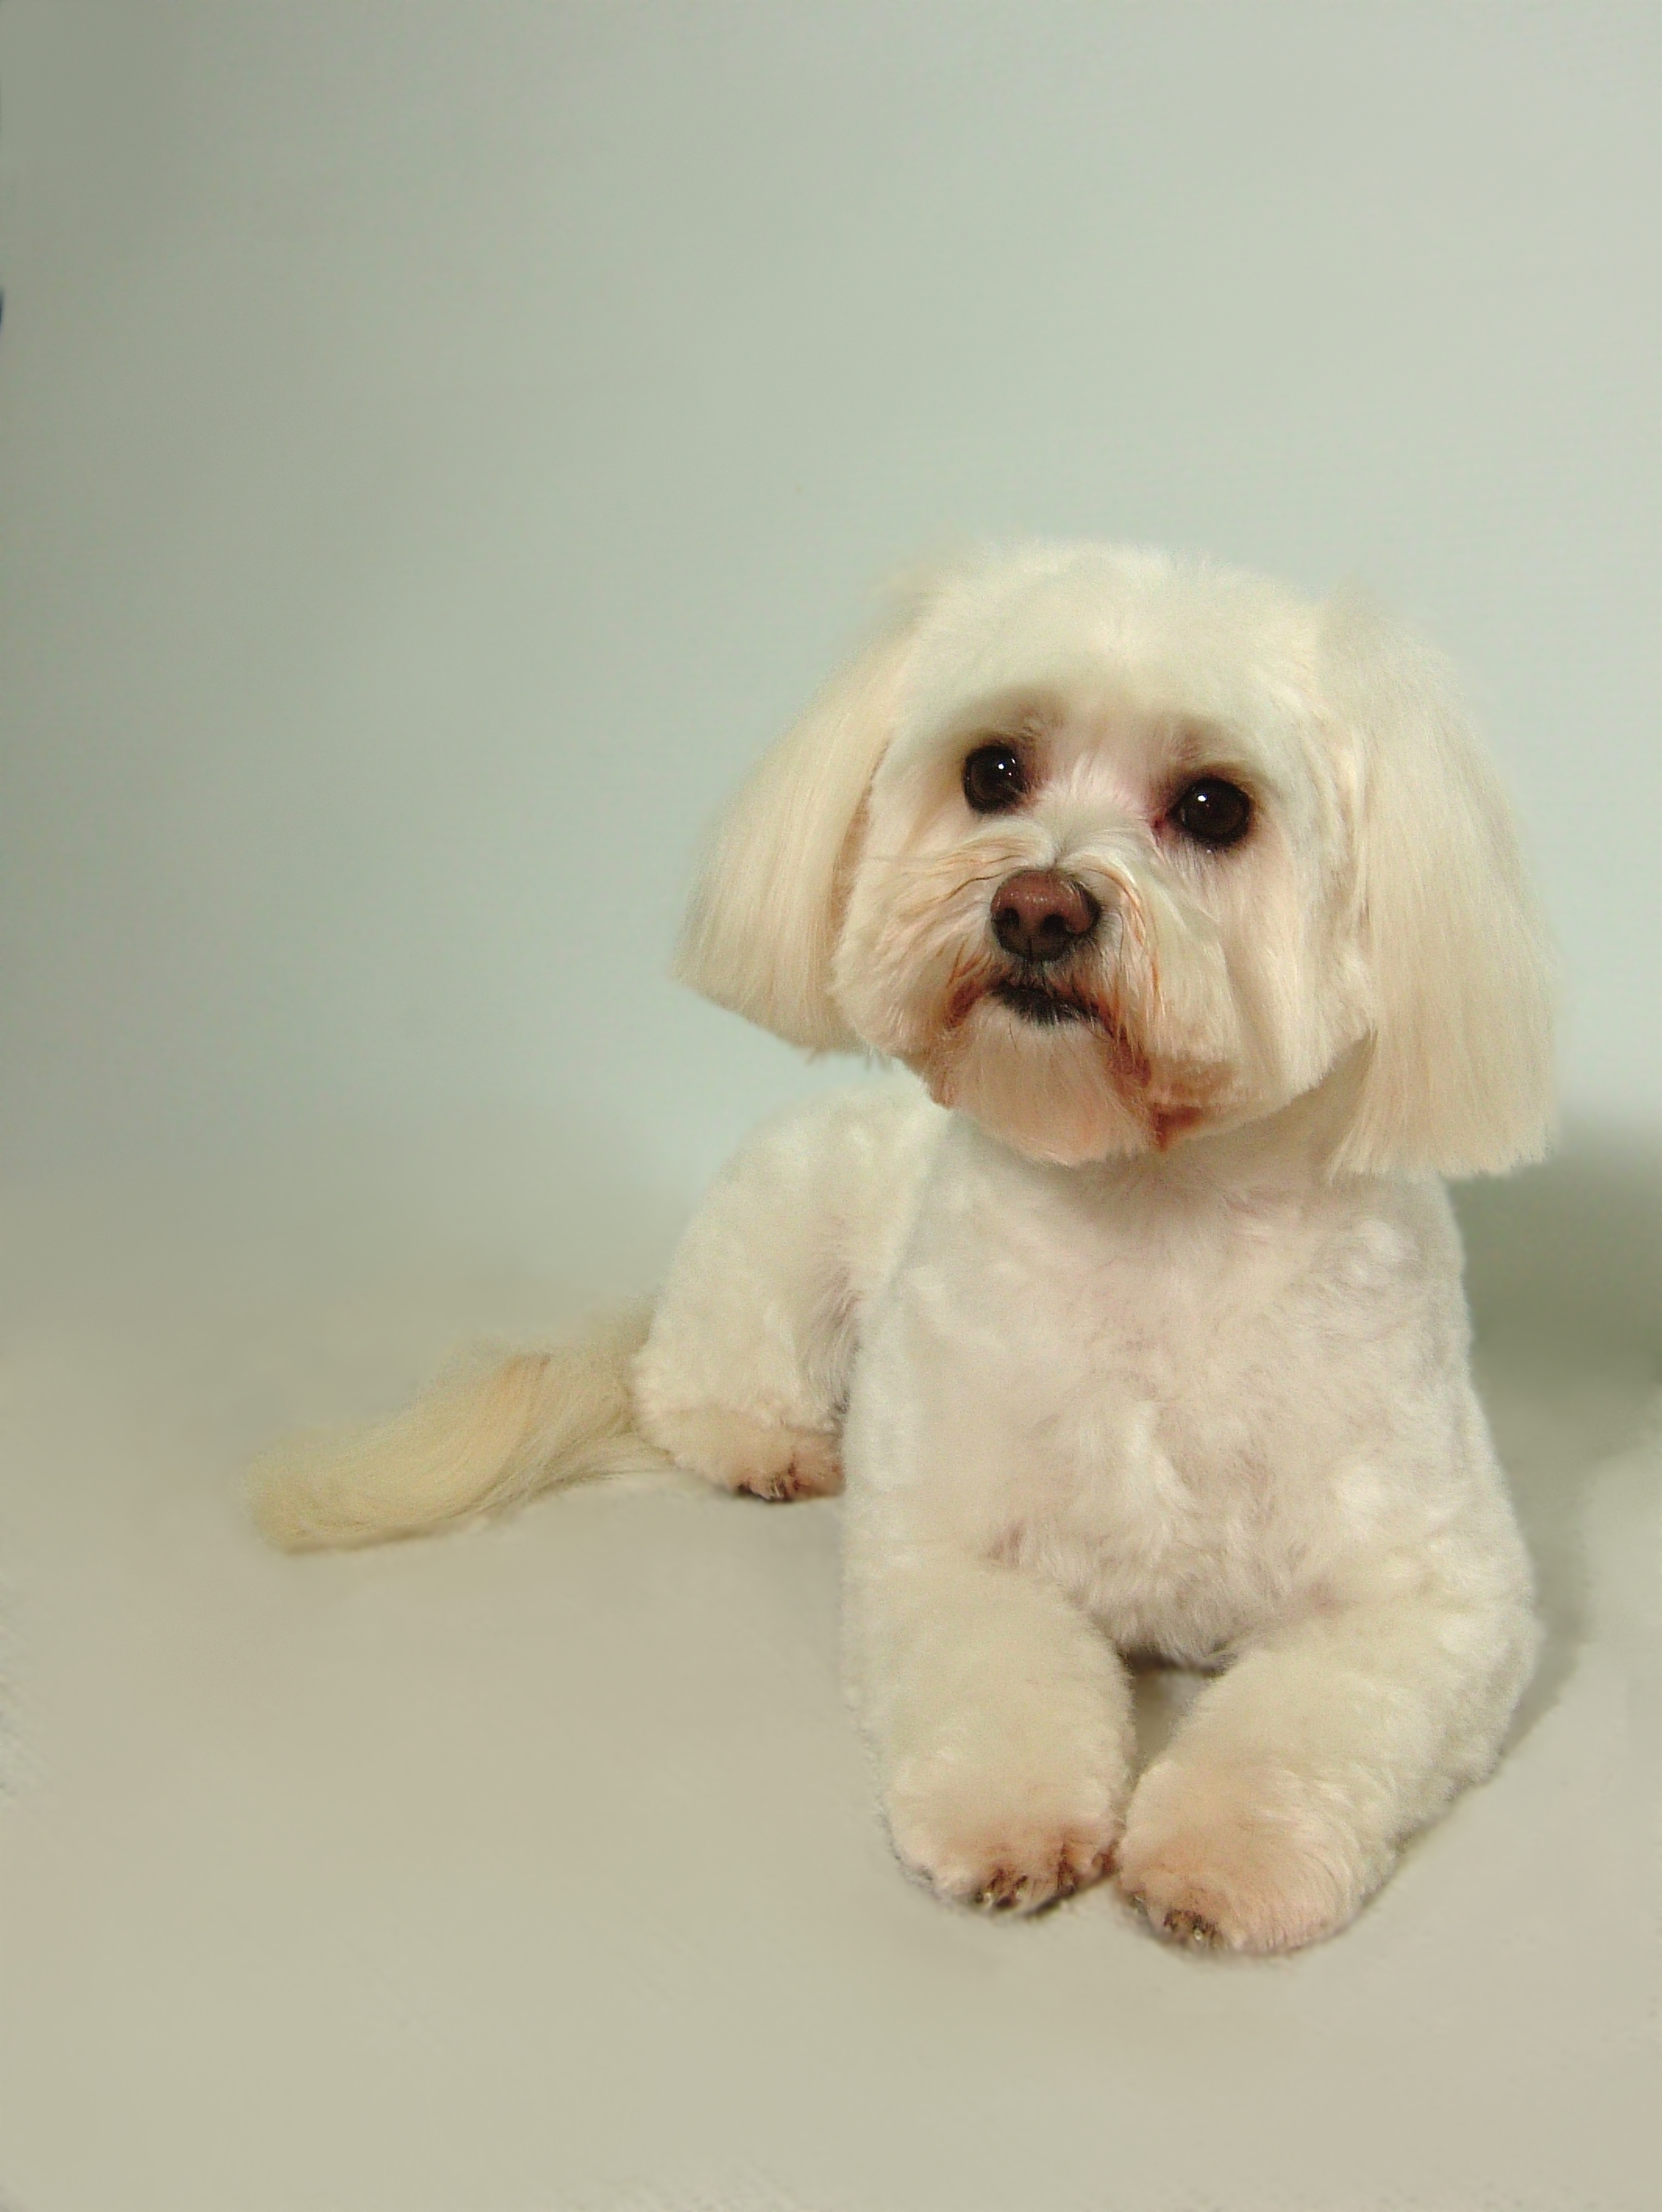 Malti-poo-Puppy-Cut-with-Daisy-Face